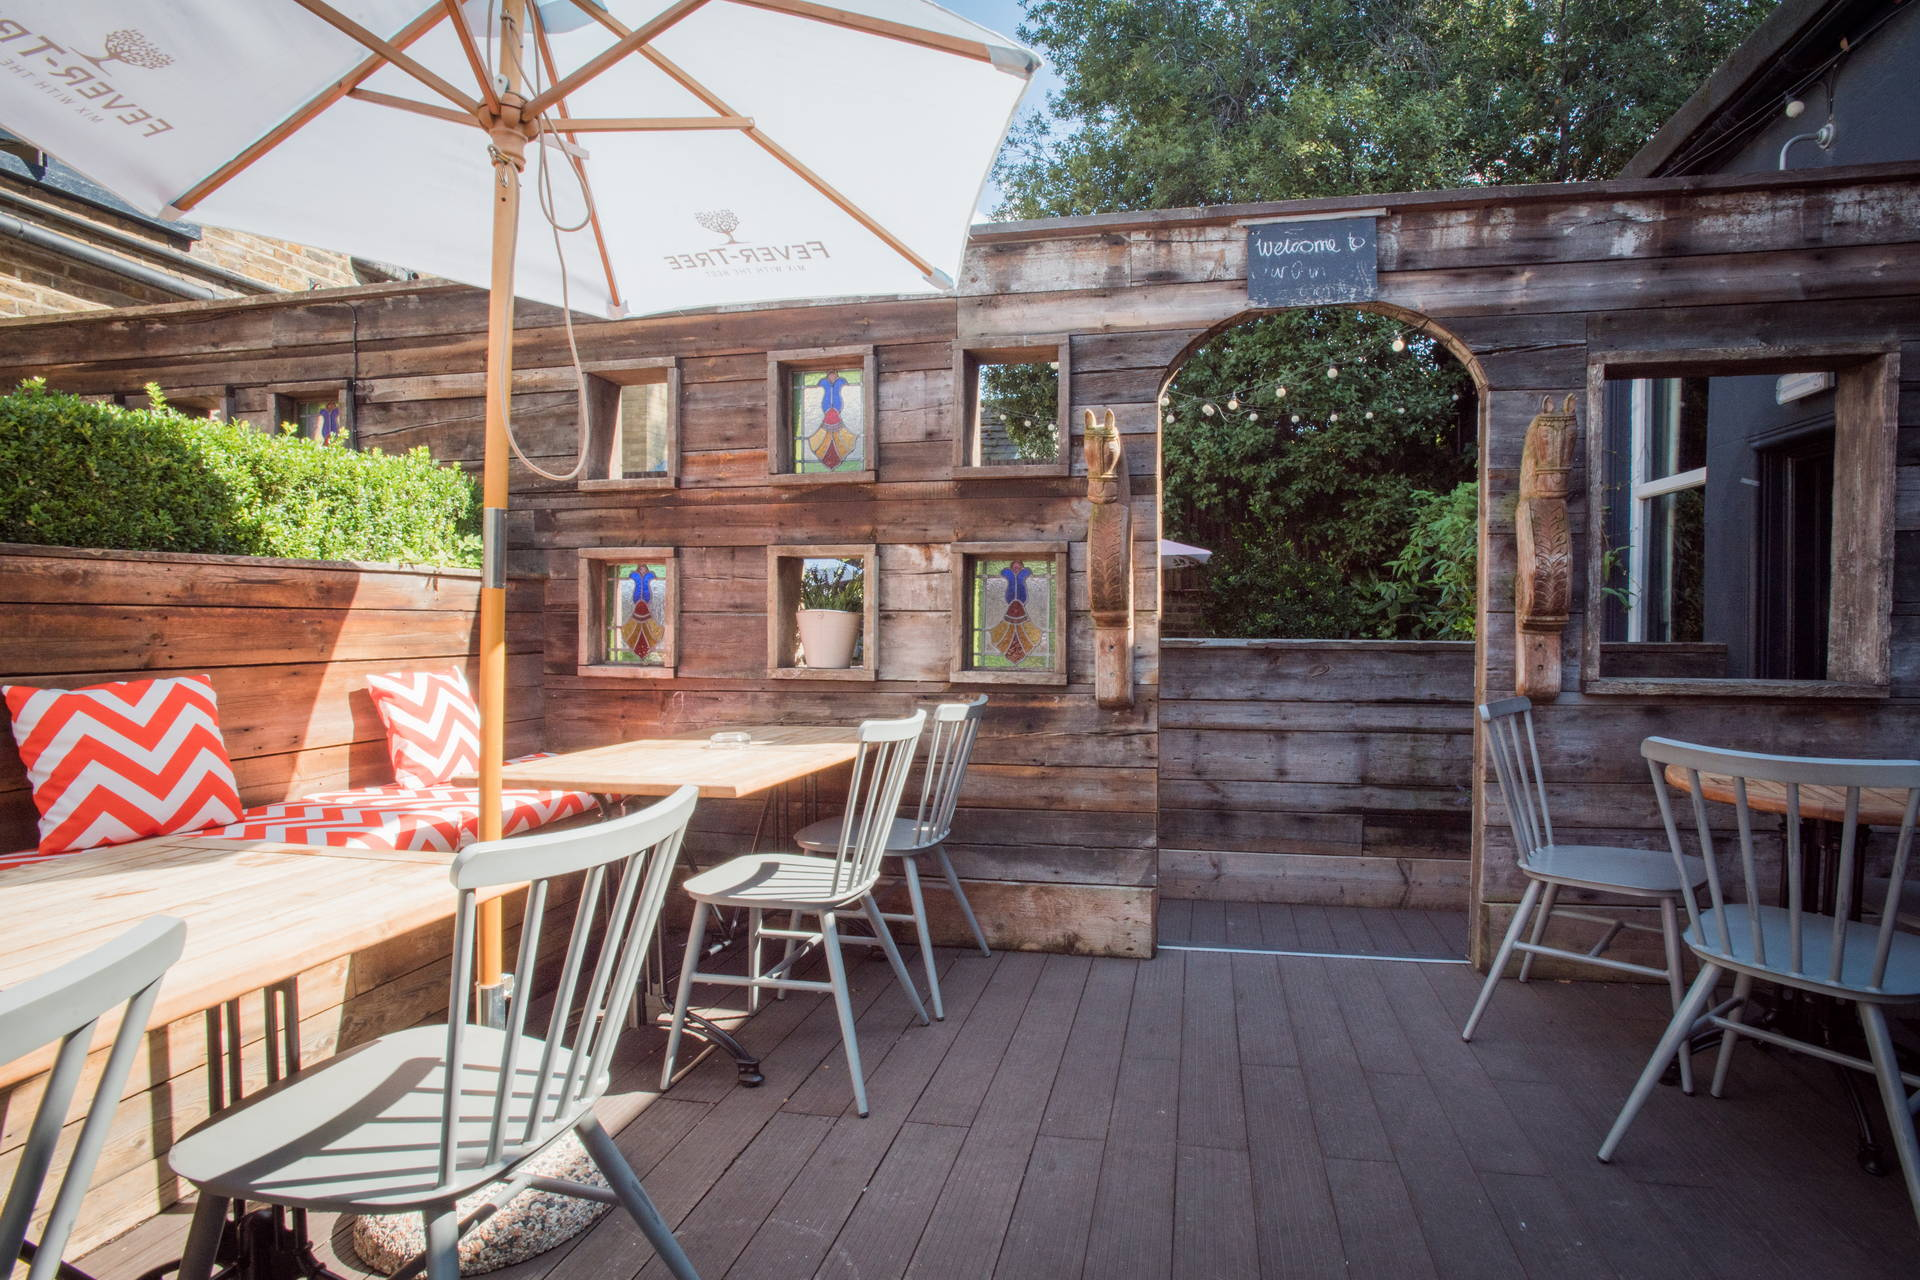 Beer Garden in Chiswick | The Pilot